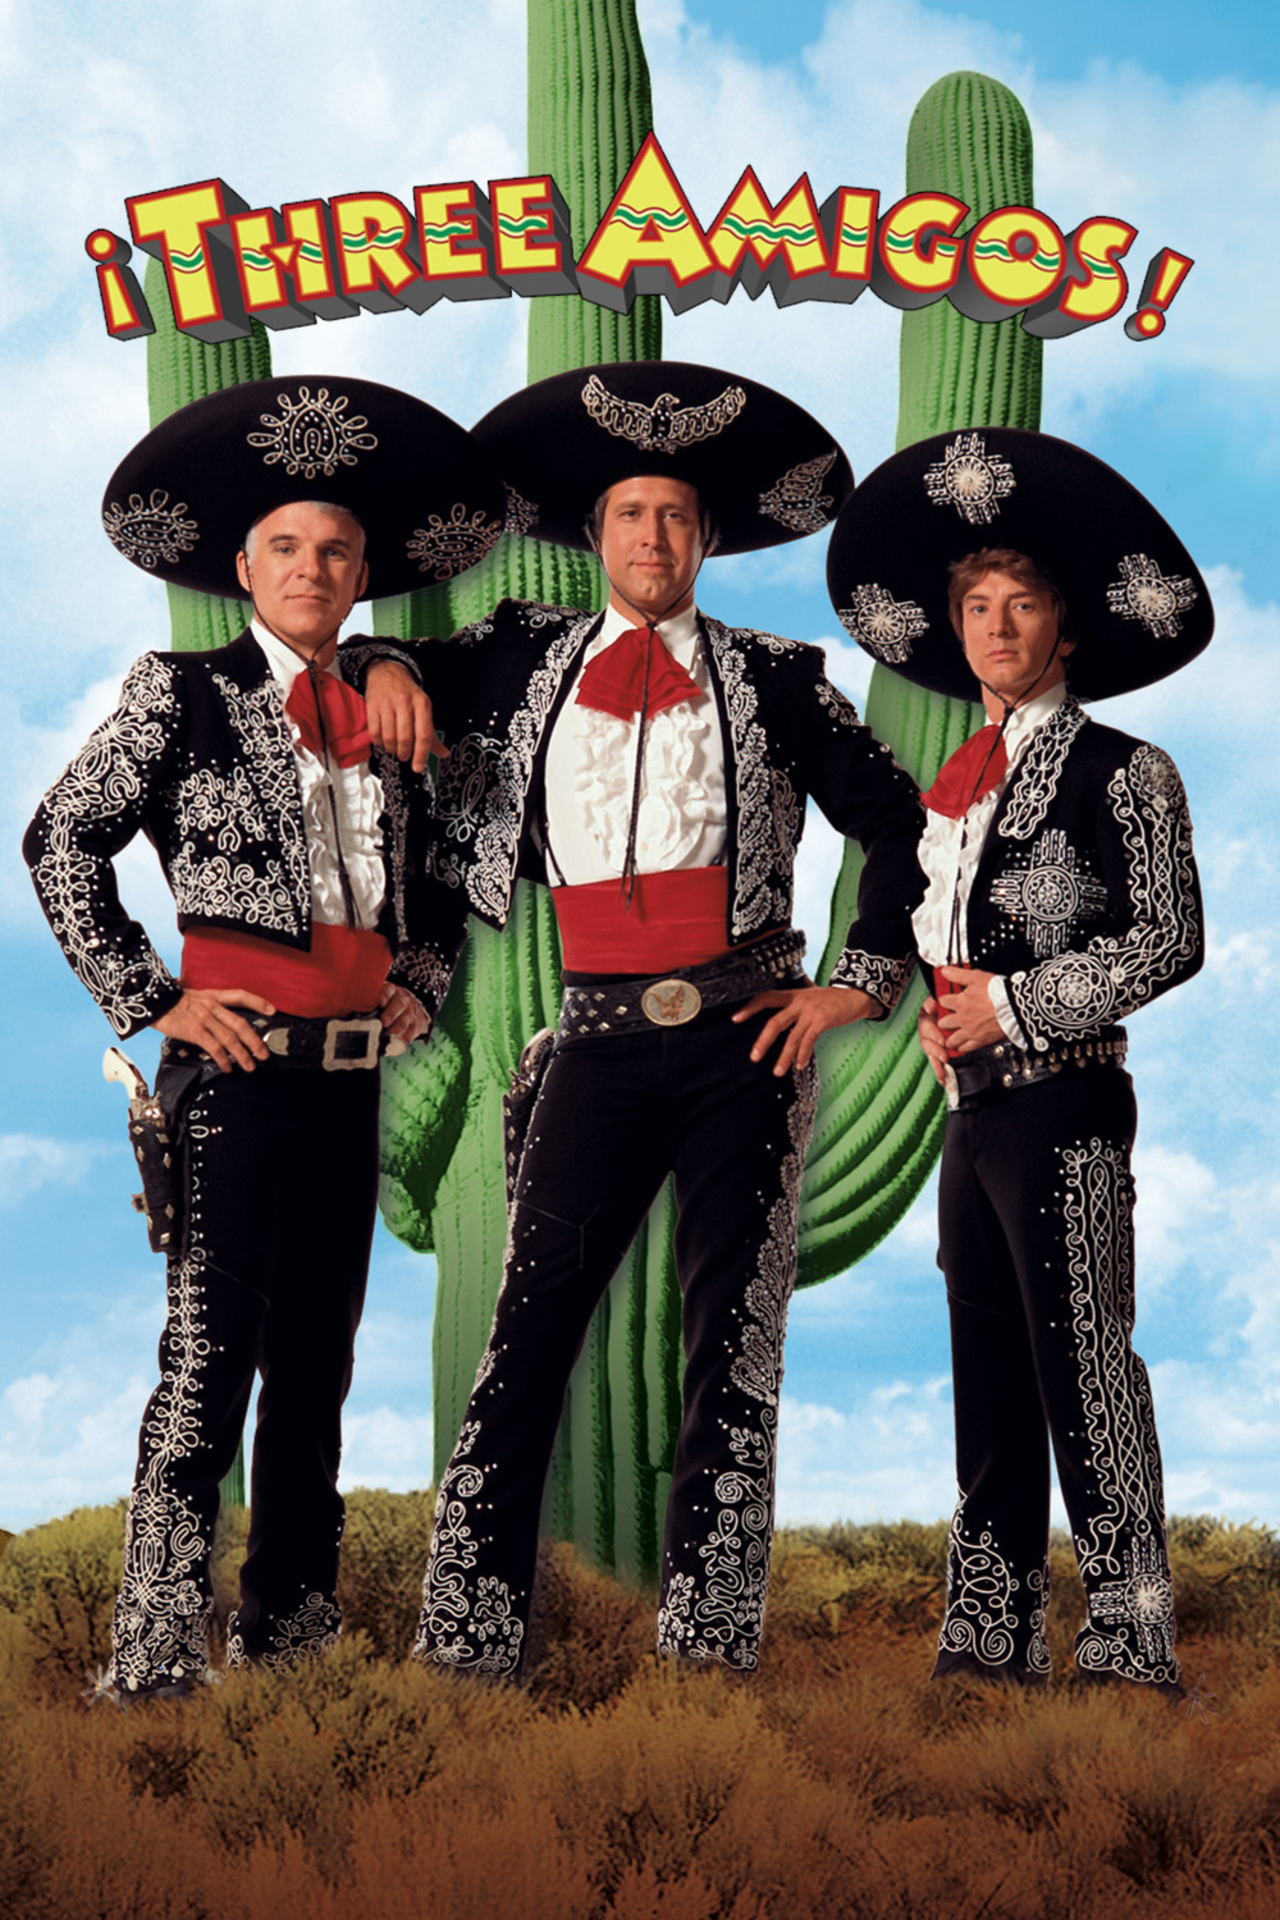 ¡Three Amigos! kapak